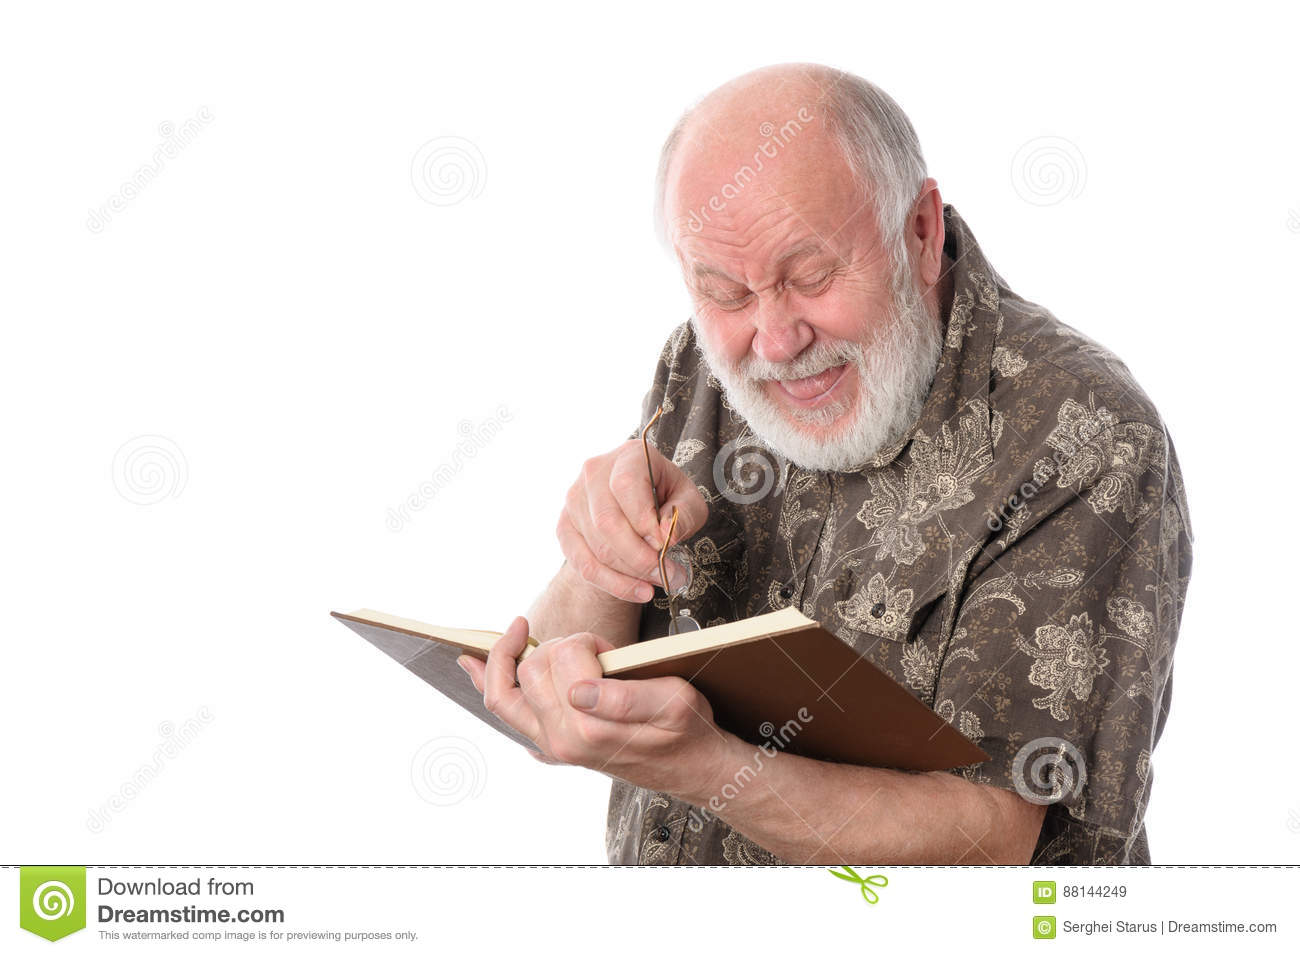 Senior man laughing while reading a book, isolated on white